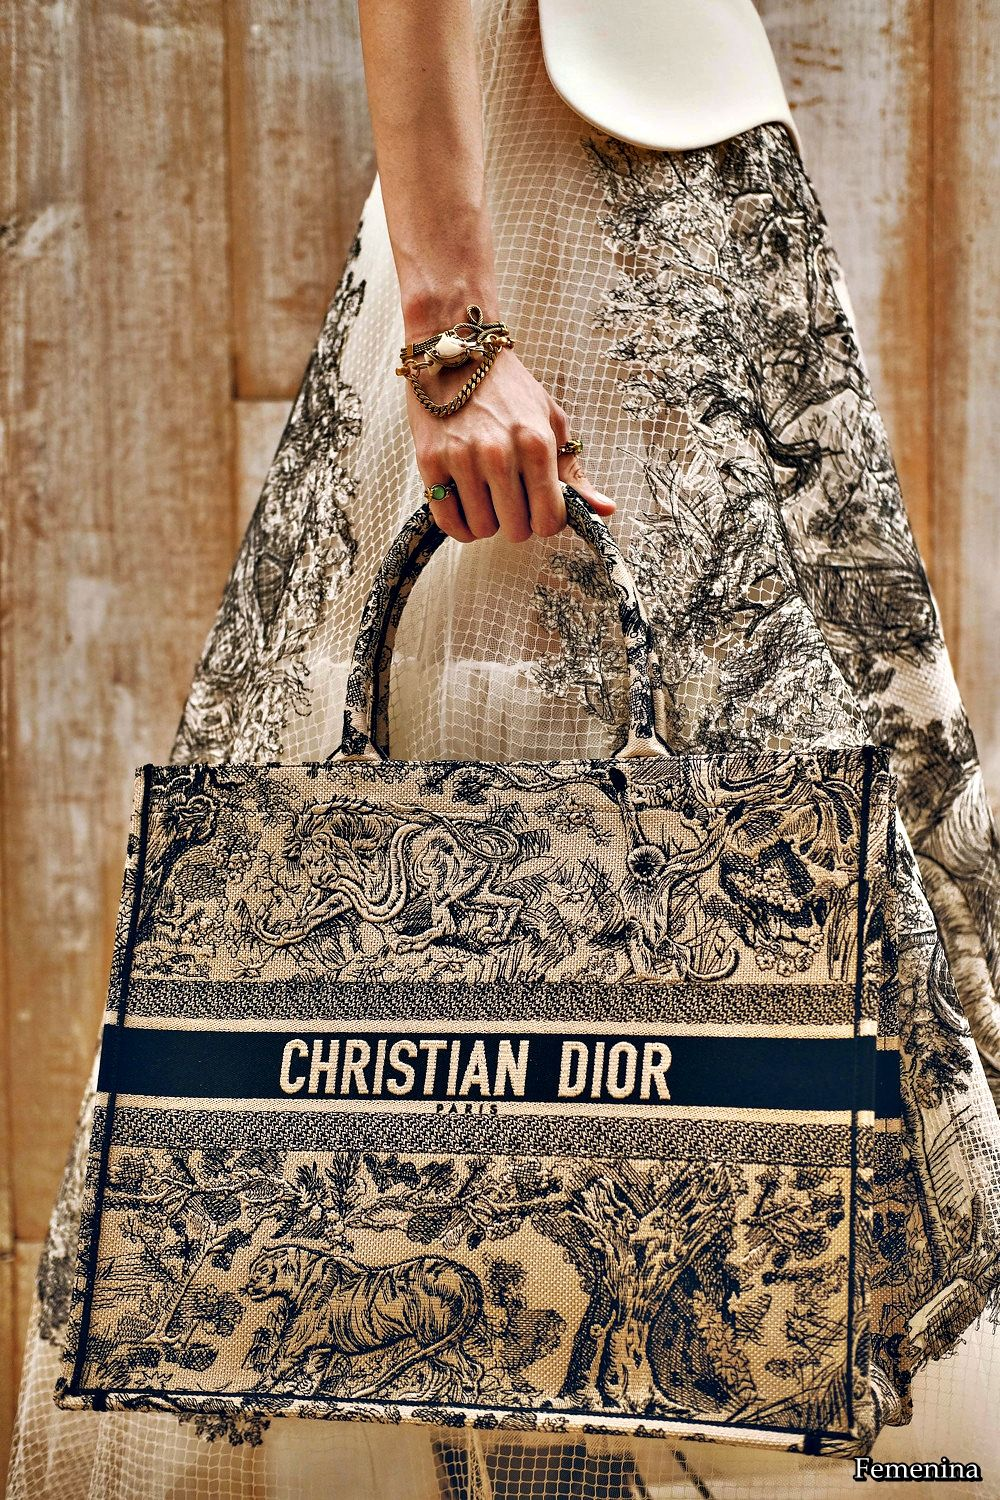 Resort Dior bag preview pictures forecast to wear for on every day in 2019